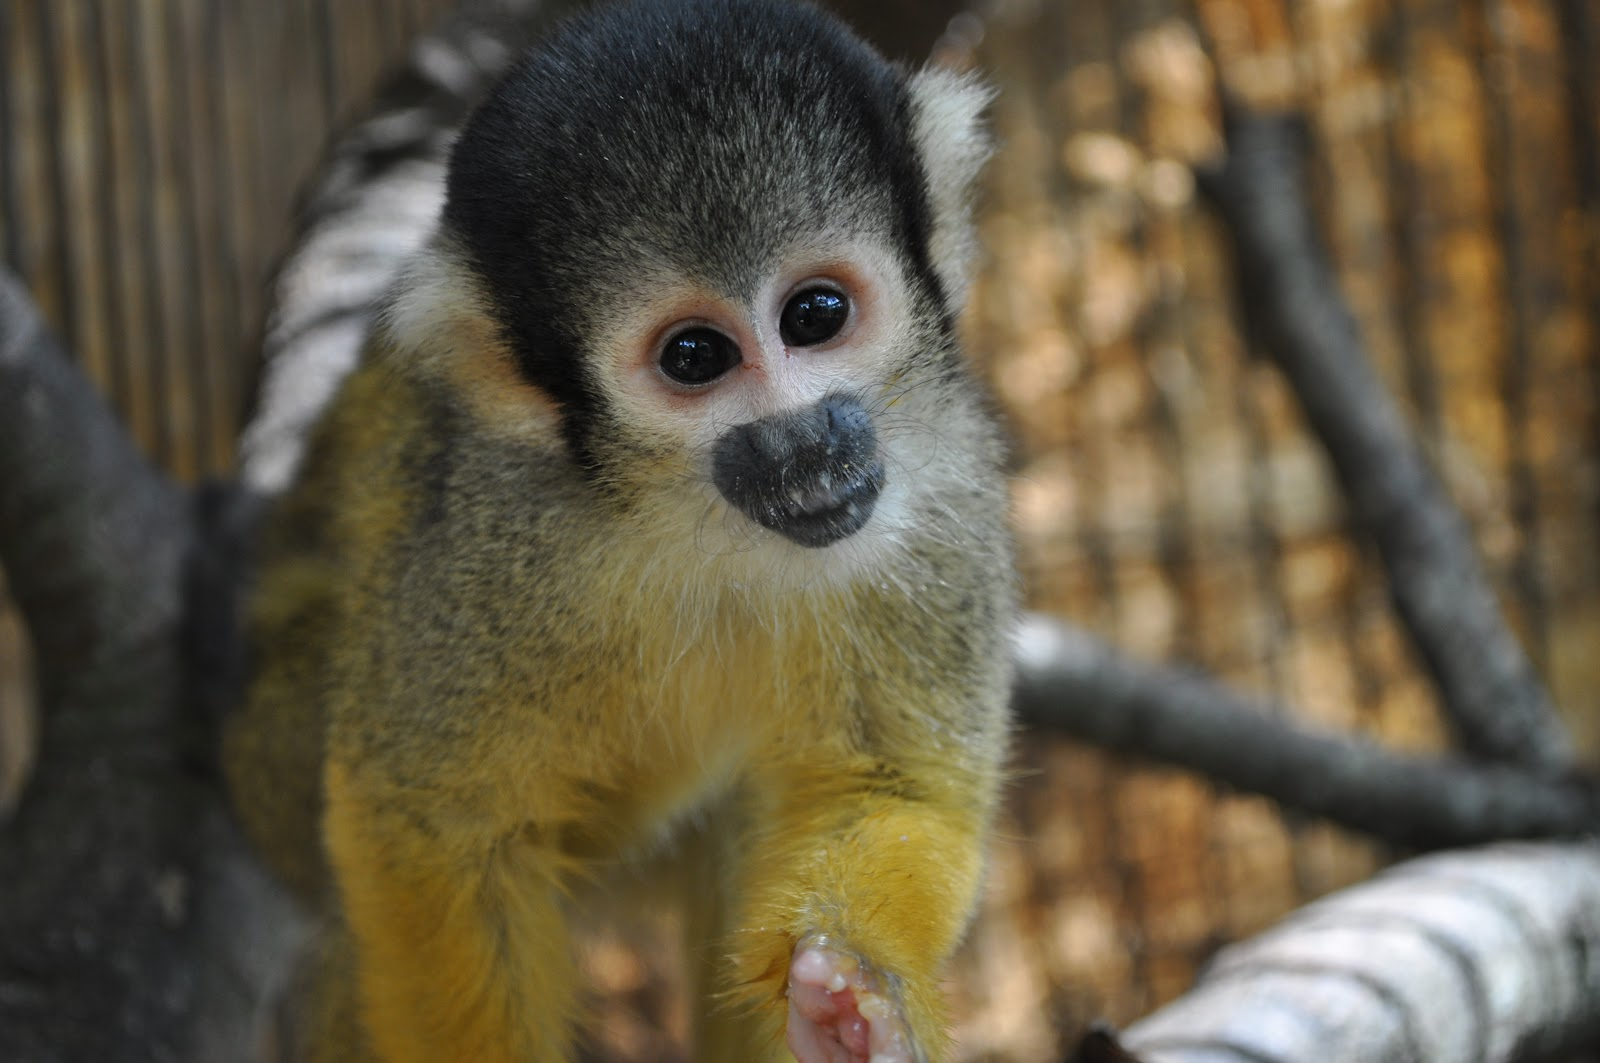 Titi Tales: Our Stories of a Small South American Monkey